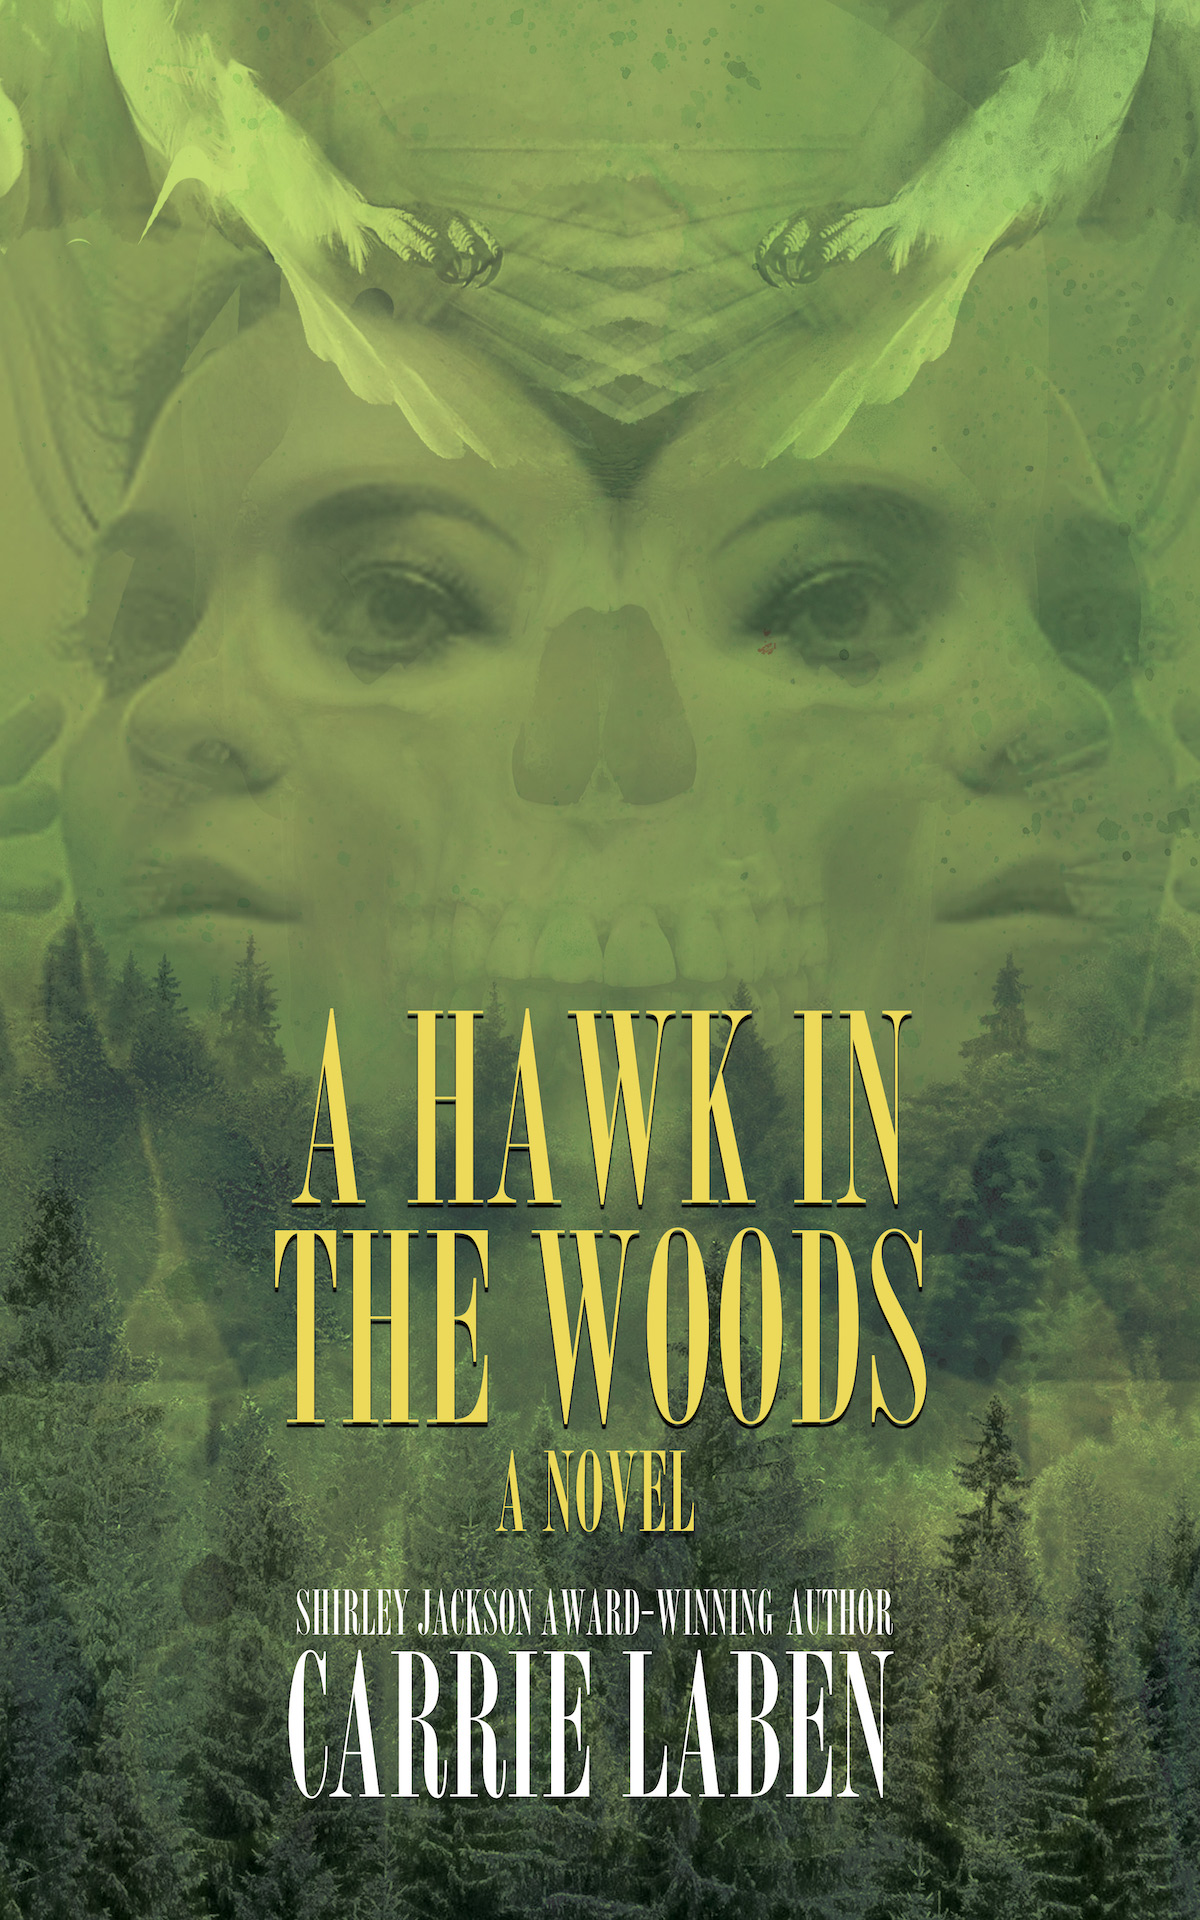 A Hawk in the Woods by Carrie Laben